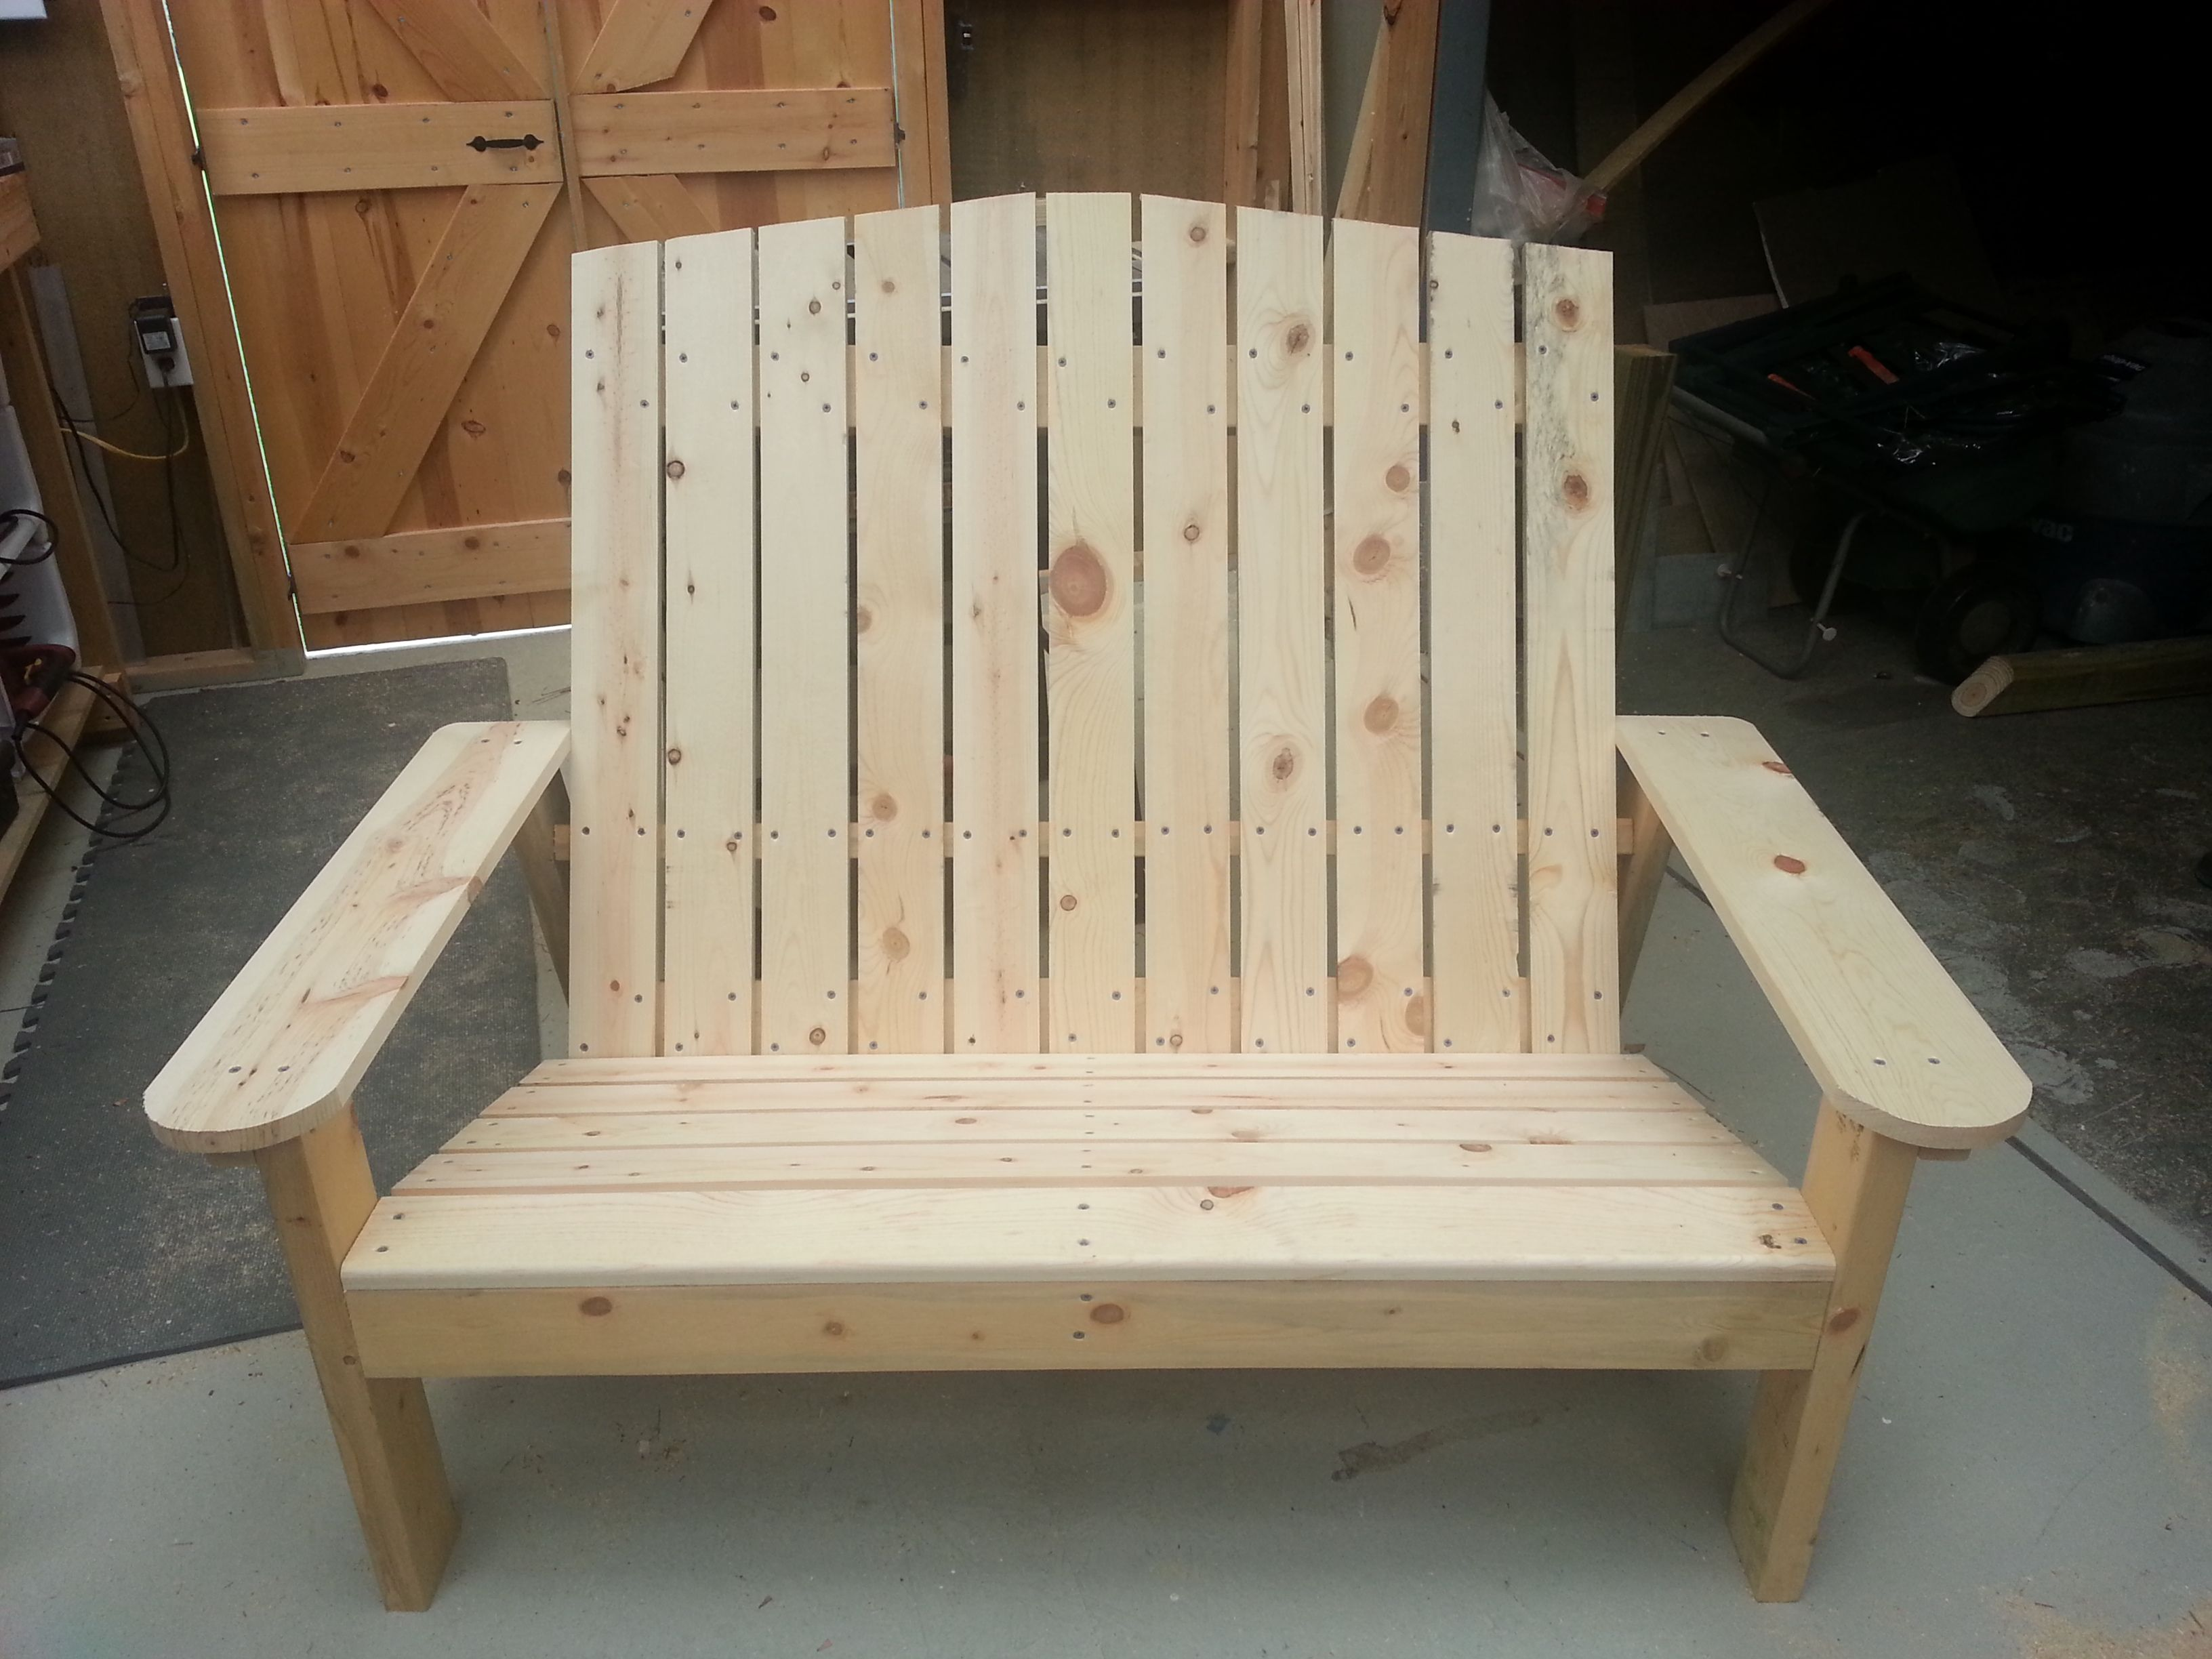 Adirondack love seat do it yourself home projects from ana white adirondack love seat do it yourself home projects from ana white solutioingenieria Gallery